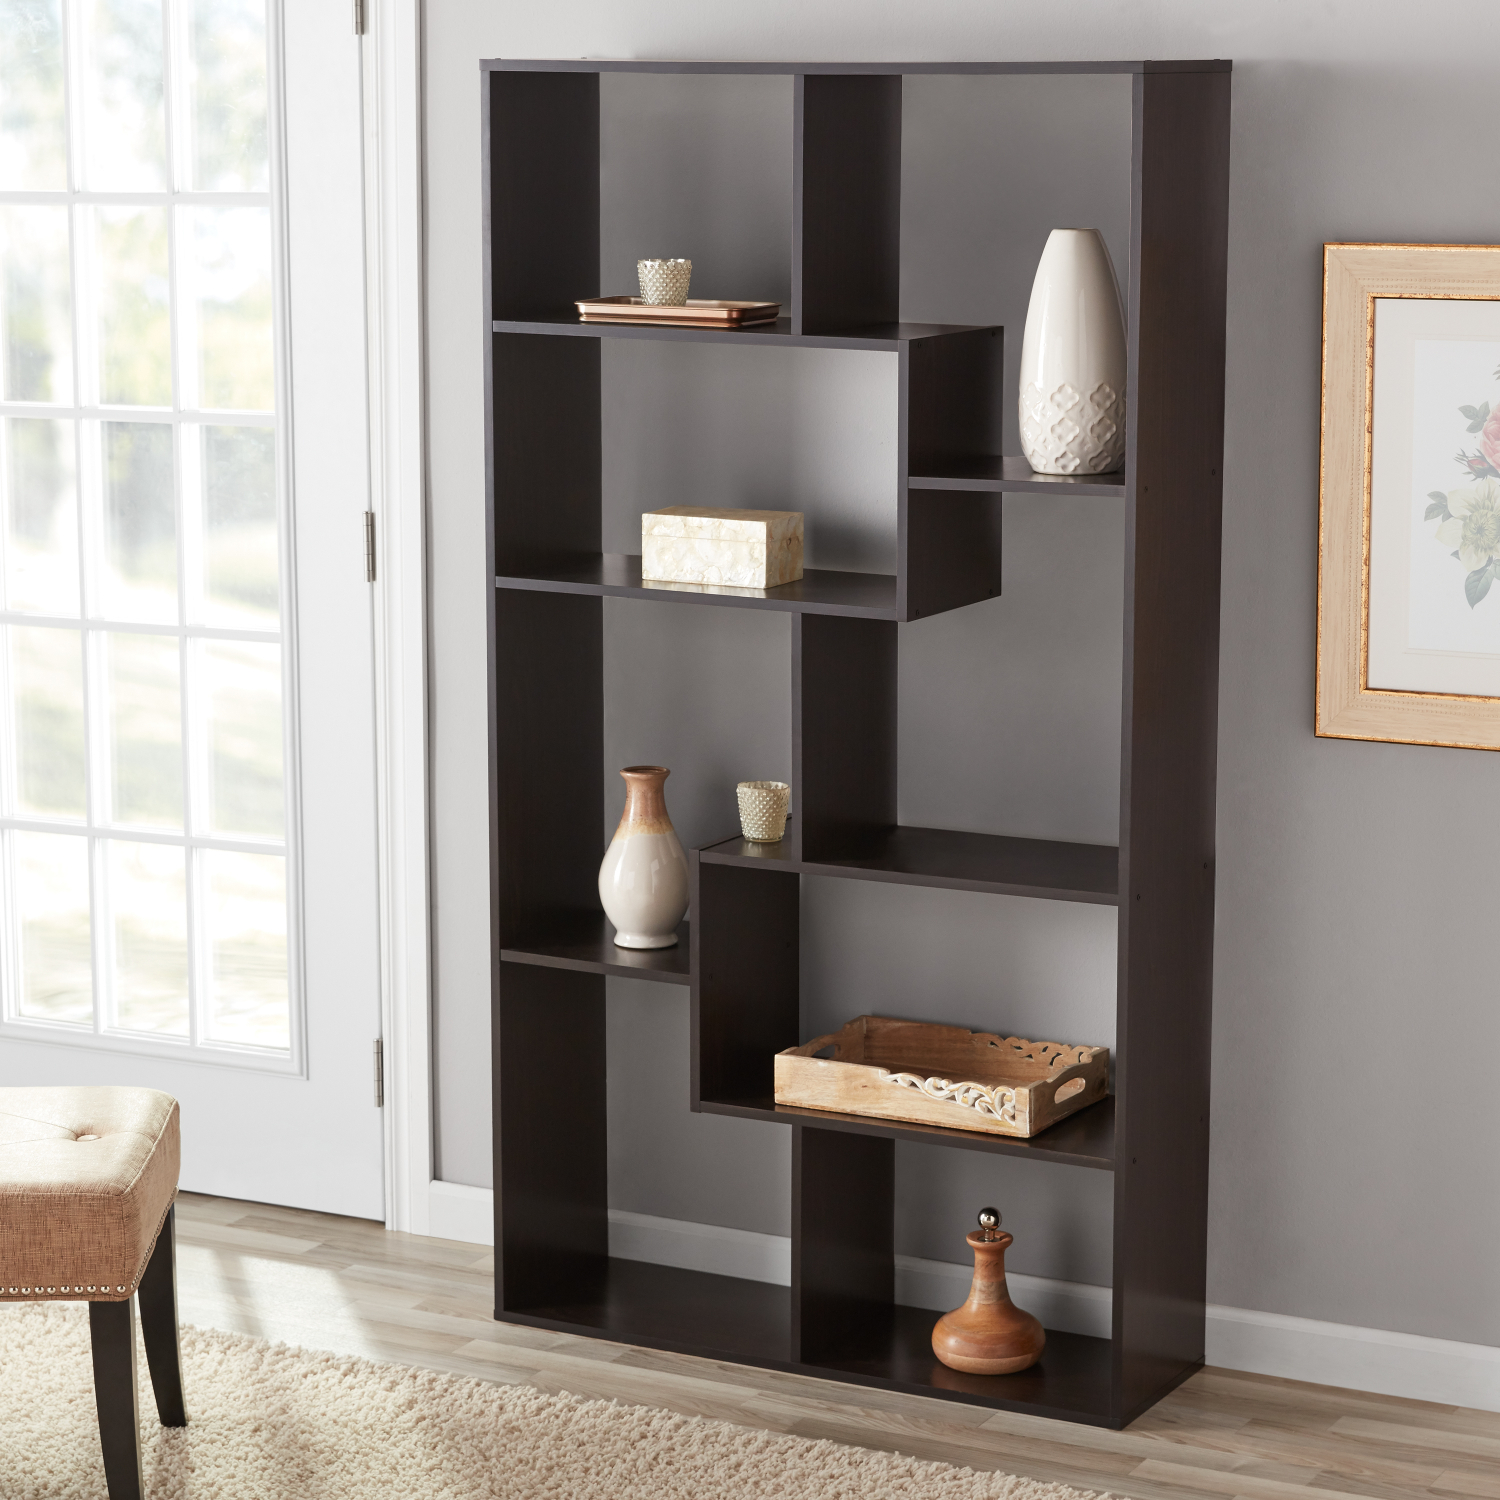 Details About Tall Bookcase Cubby Large Open Bookshelf Modern Cube 8 Shelf Display Brown White